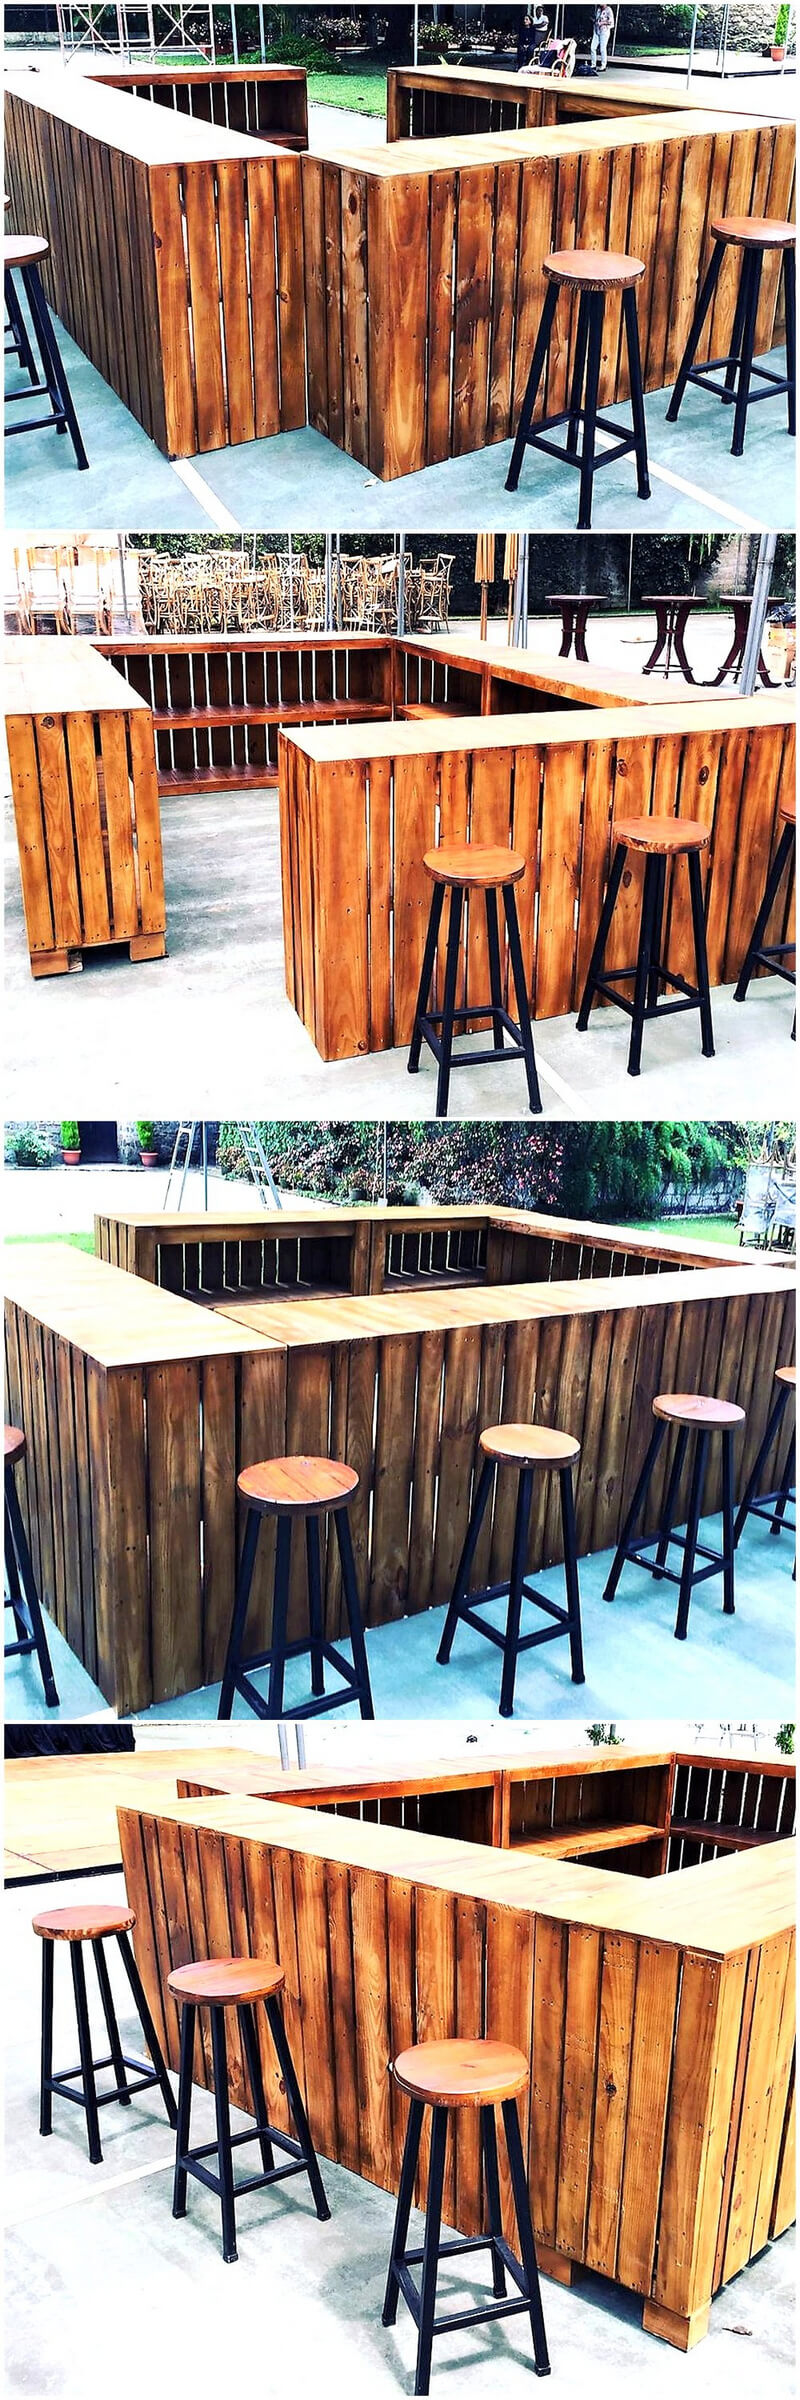 repurposed wooden pallets bar plan